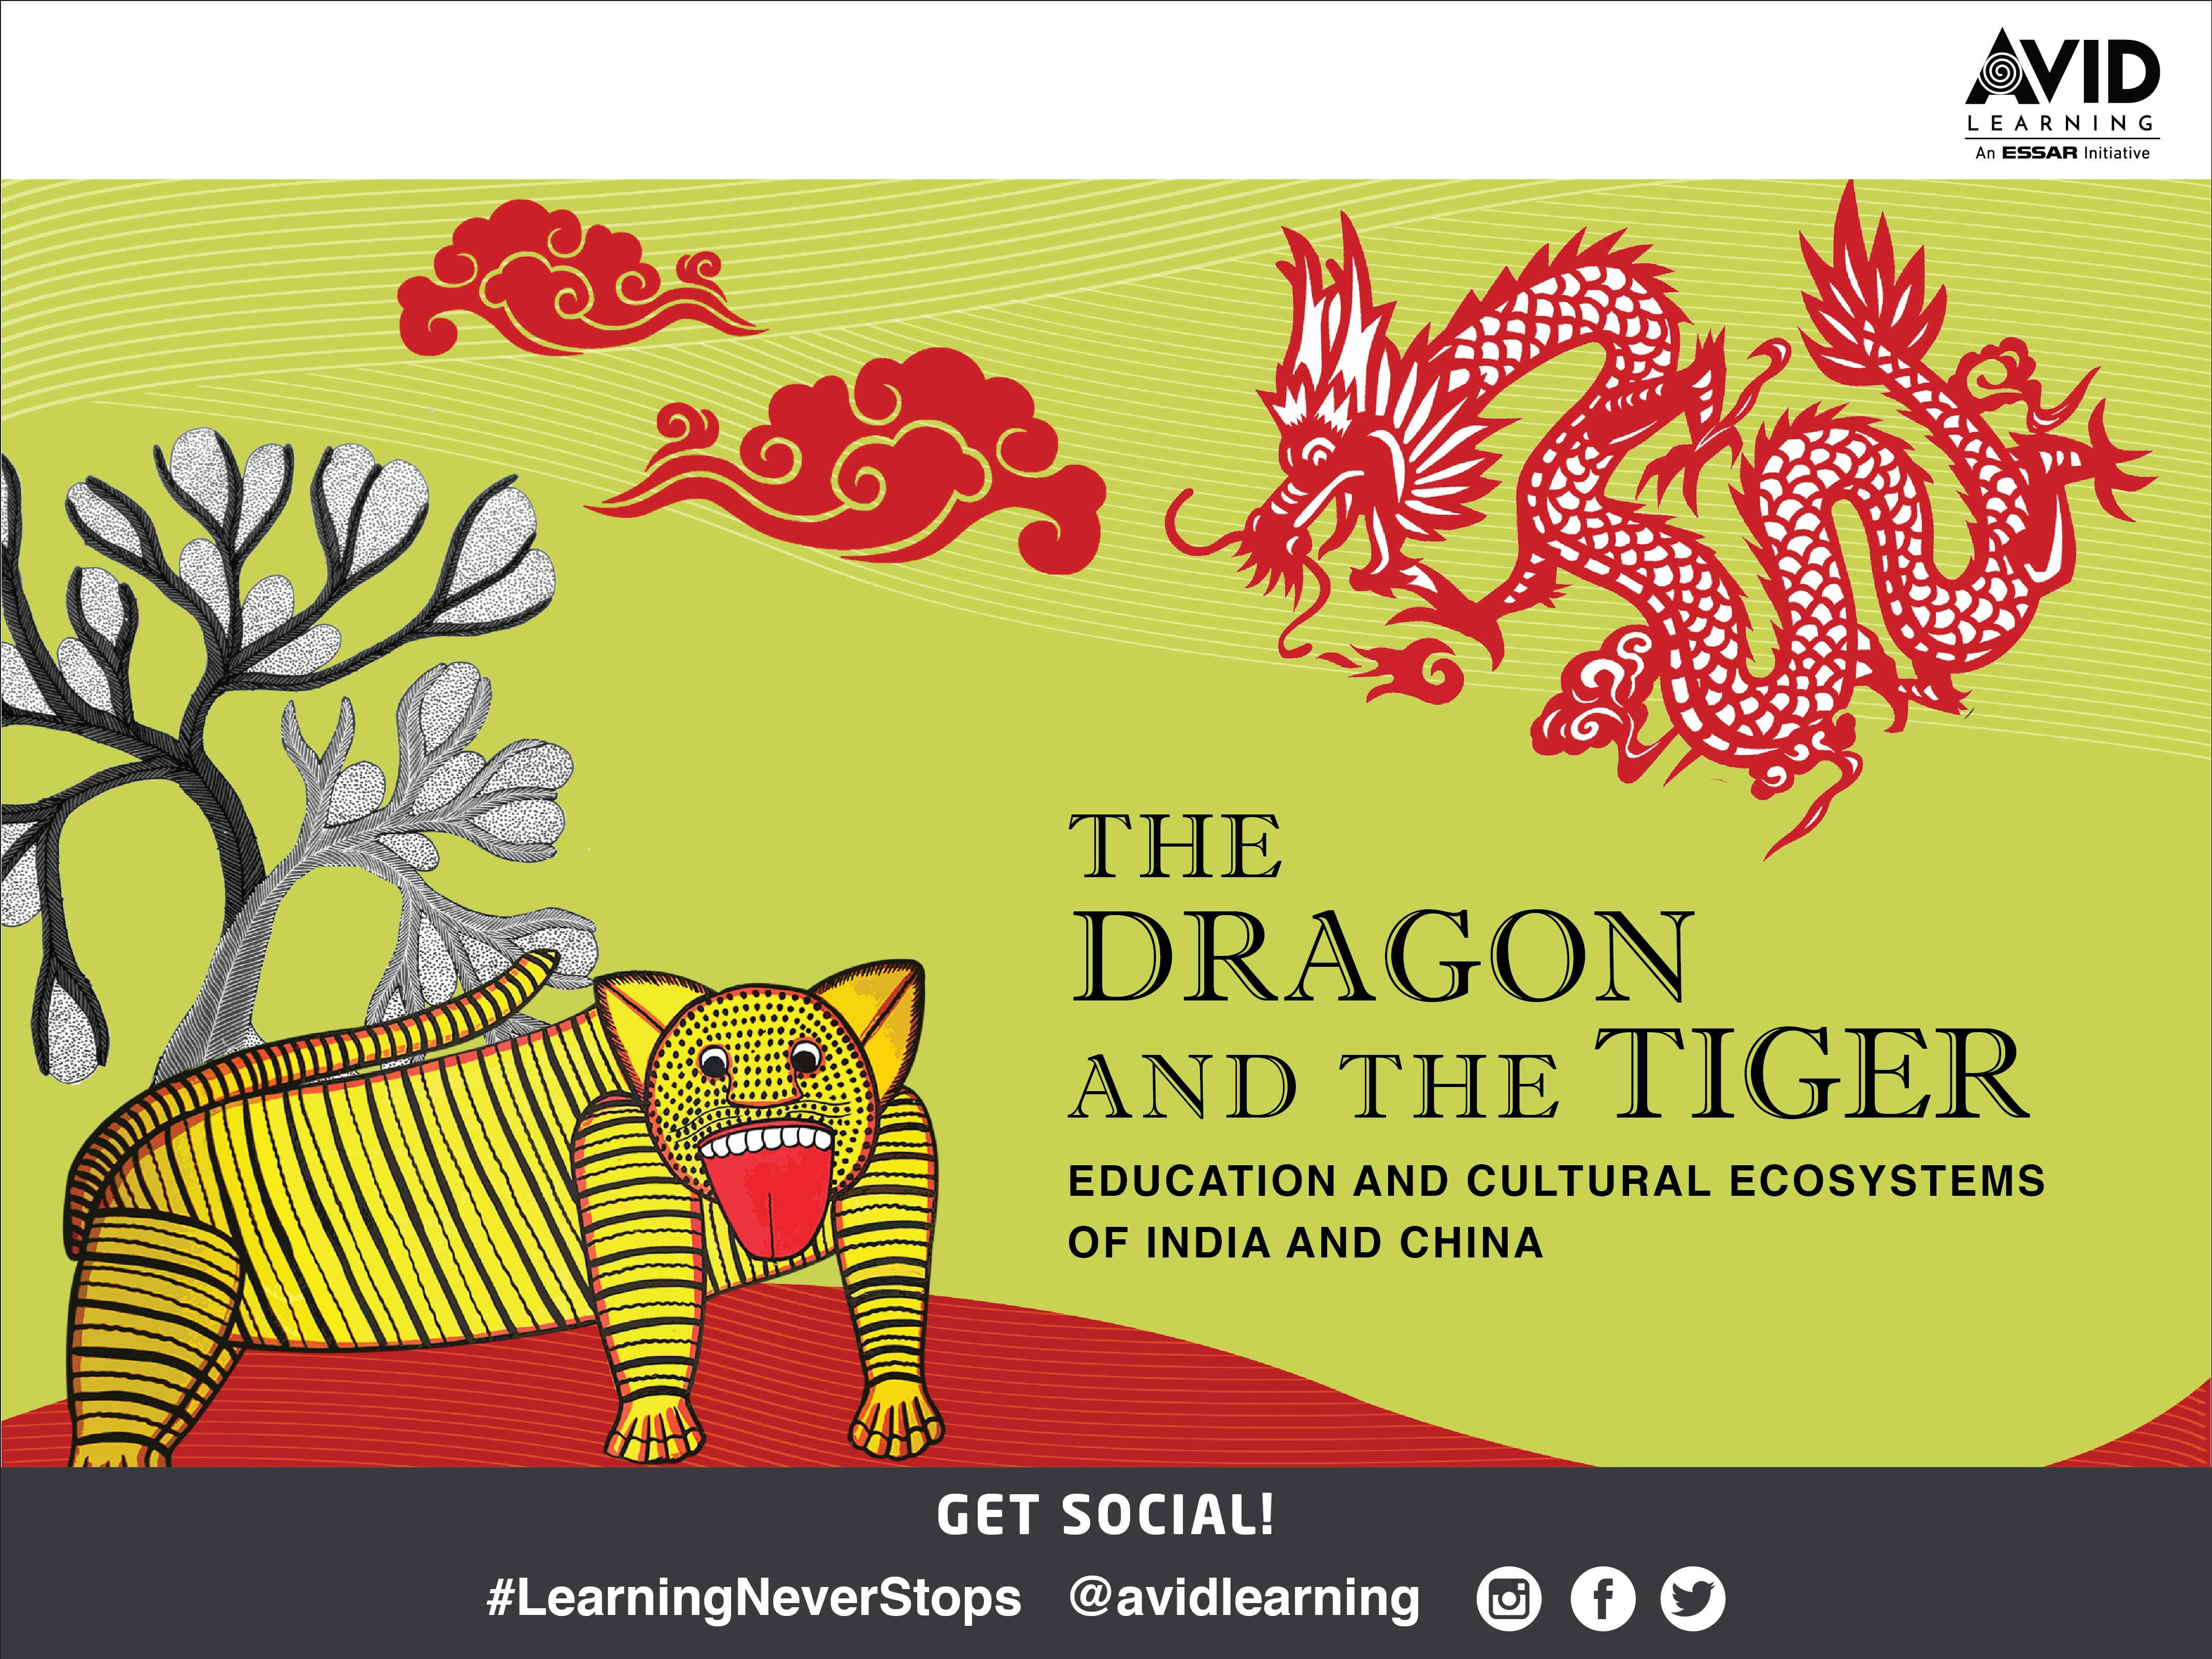 E-199 - The Dragon and The Tiger: Education and Cultural Ecosystems of India and China